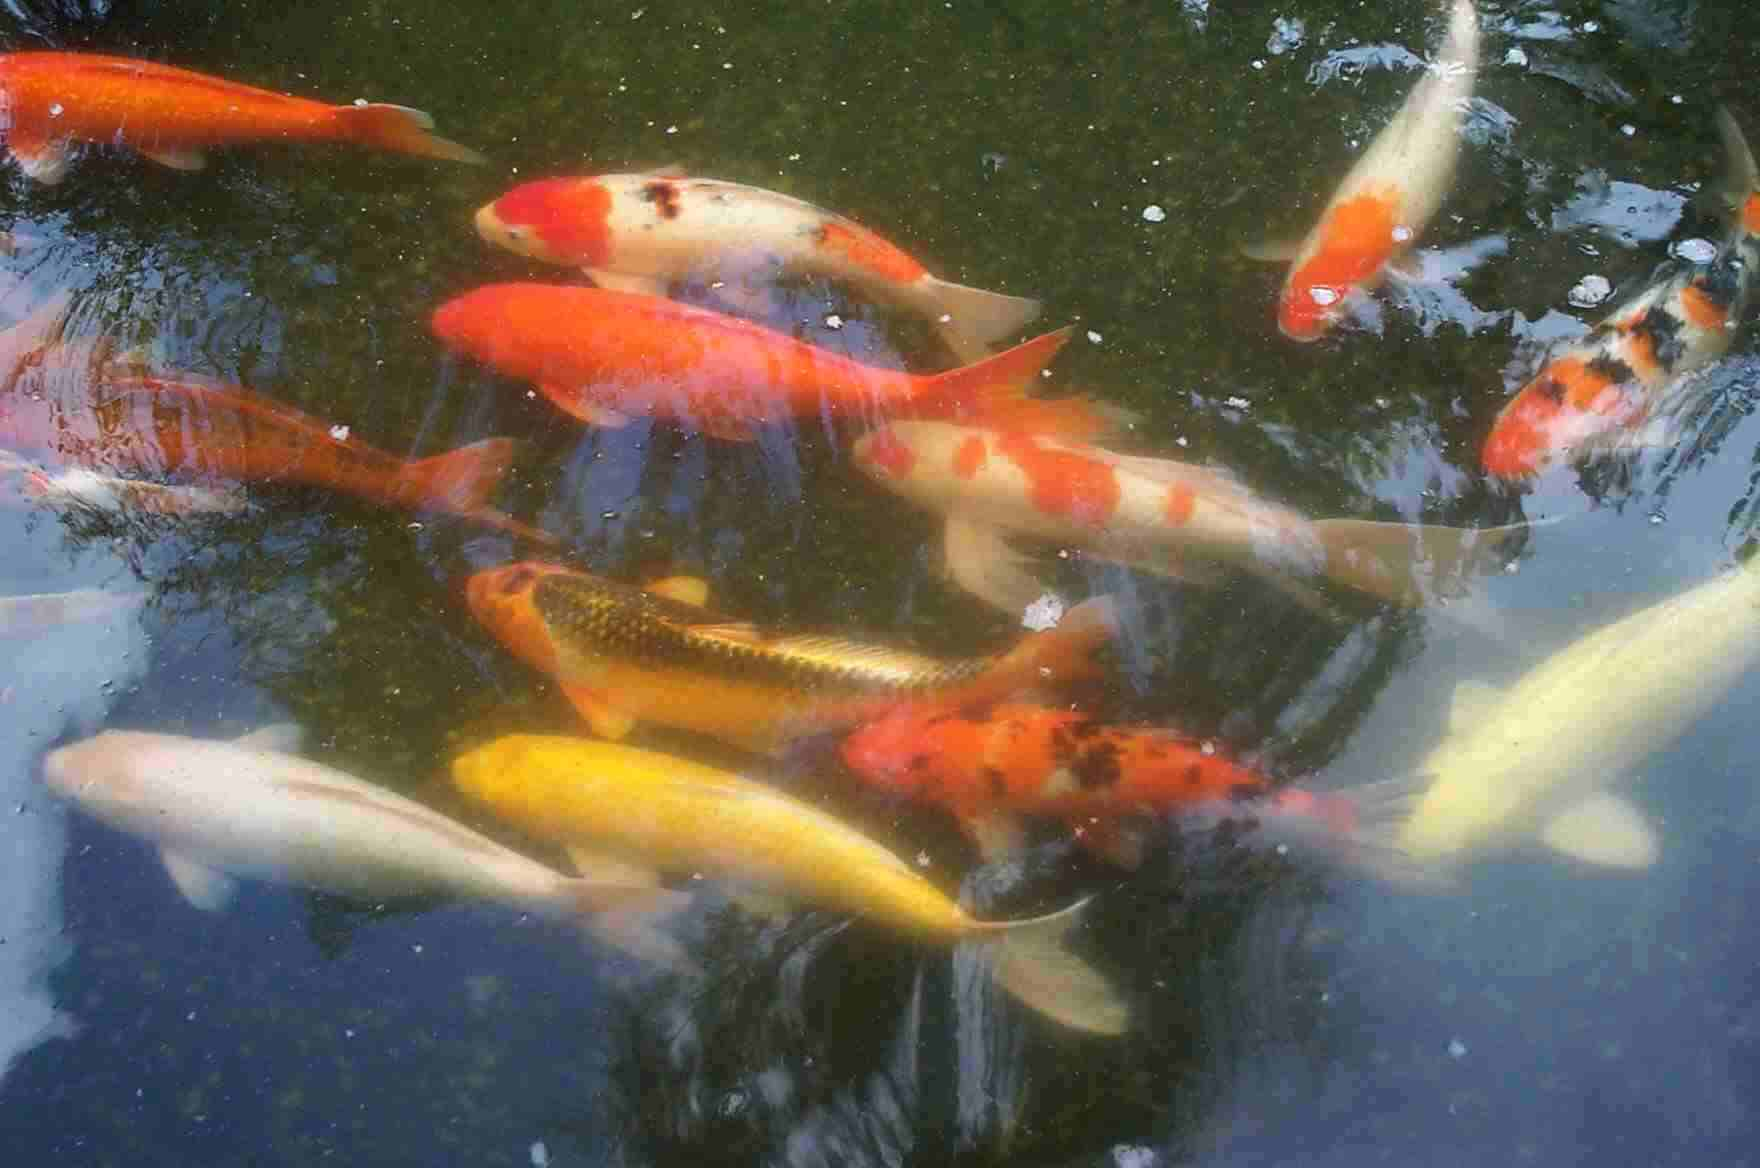 Discus fish for sale 8 amazing giant koi fish for sale for Large butterfly koi for sale